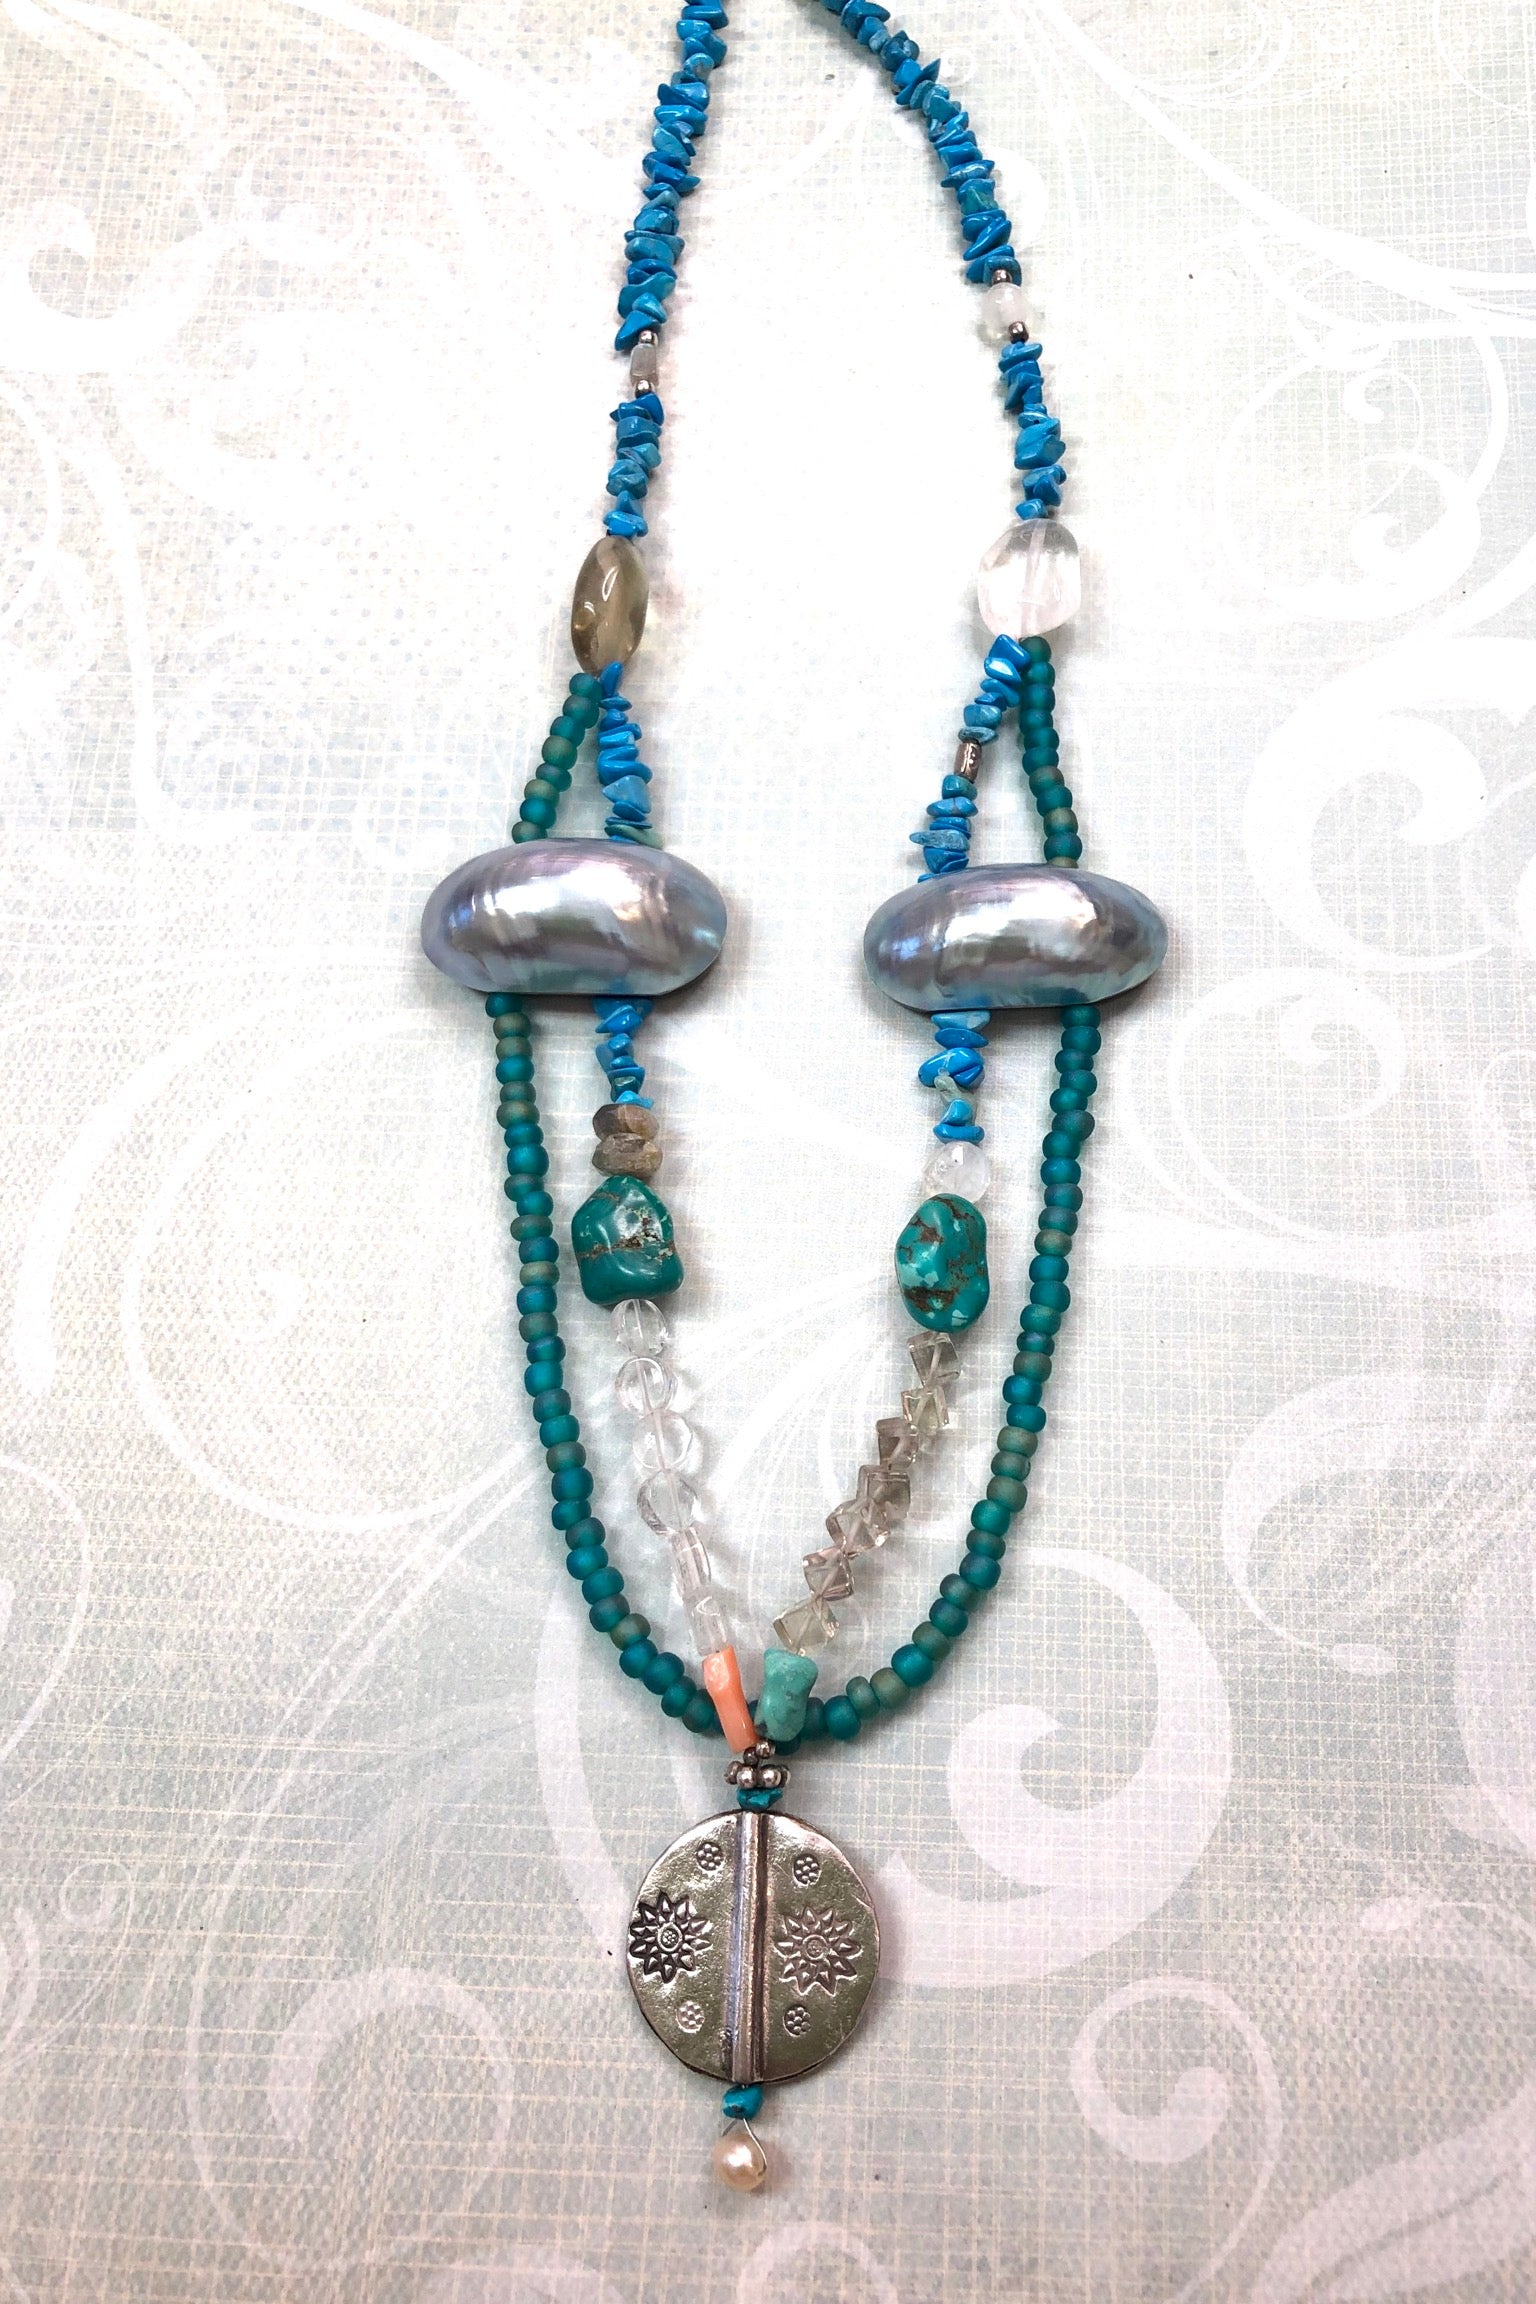 Necklace Echo Sea and Stars has a silver bead from Thai Hill Tribes in centre and Other stones include Howlite, coral,turquoise, rock crystal, mother of pearl shell, glass beads and smokey quartz.